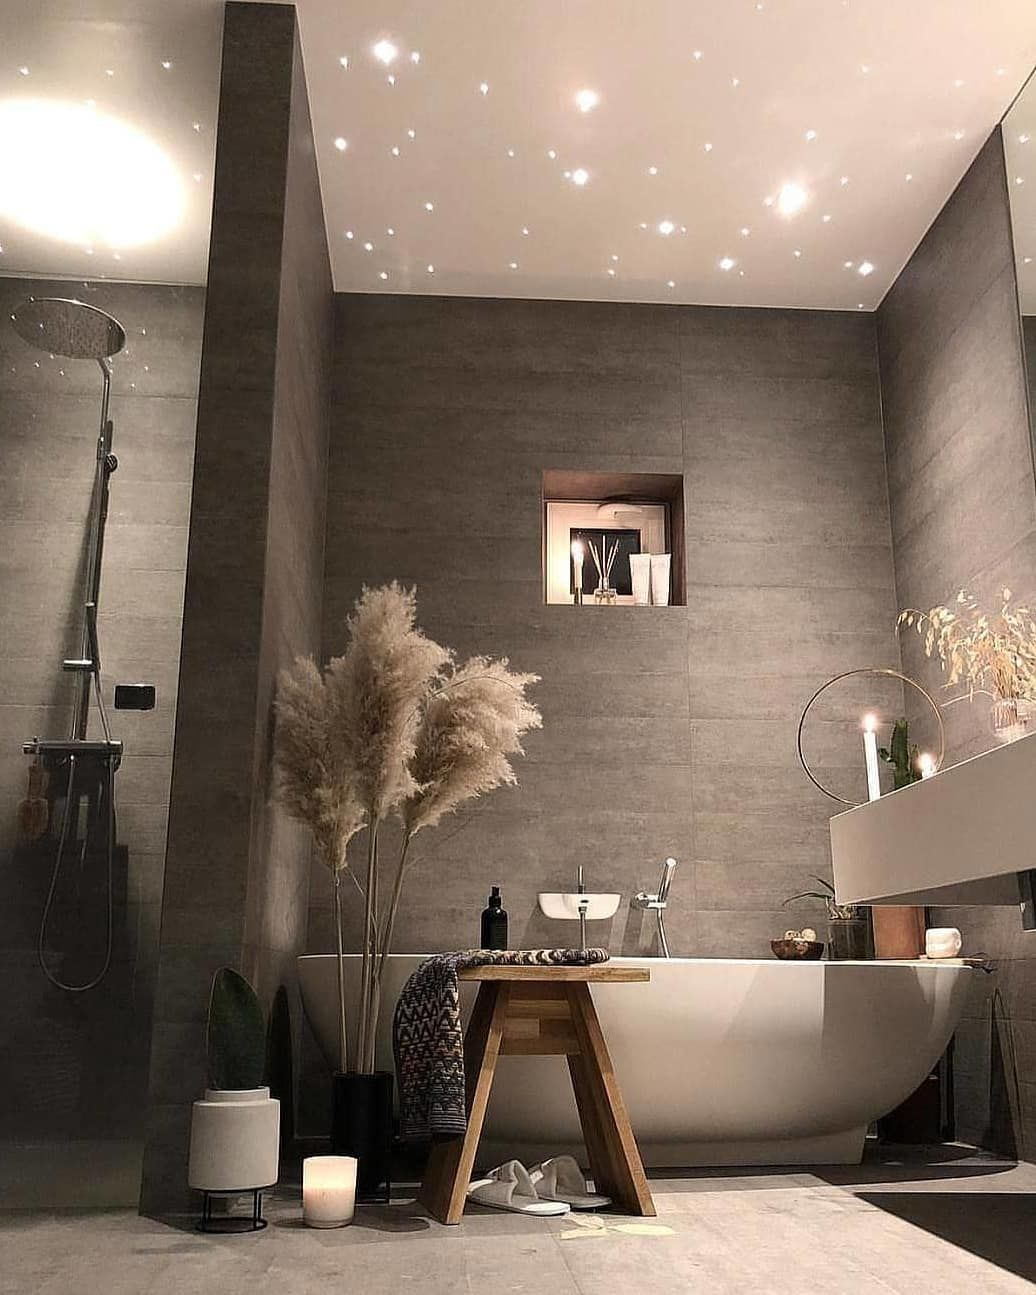 Homeinteriordaily What Do You Think Beautiful Bathroom Designed By Futurenord Modernes Badezimmer Badezimmer Dekor Badezimmer Renovieren